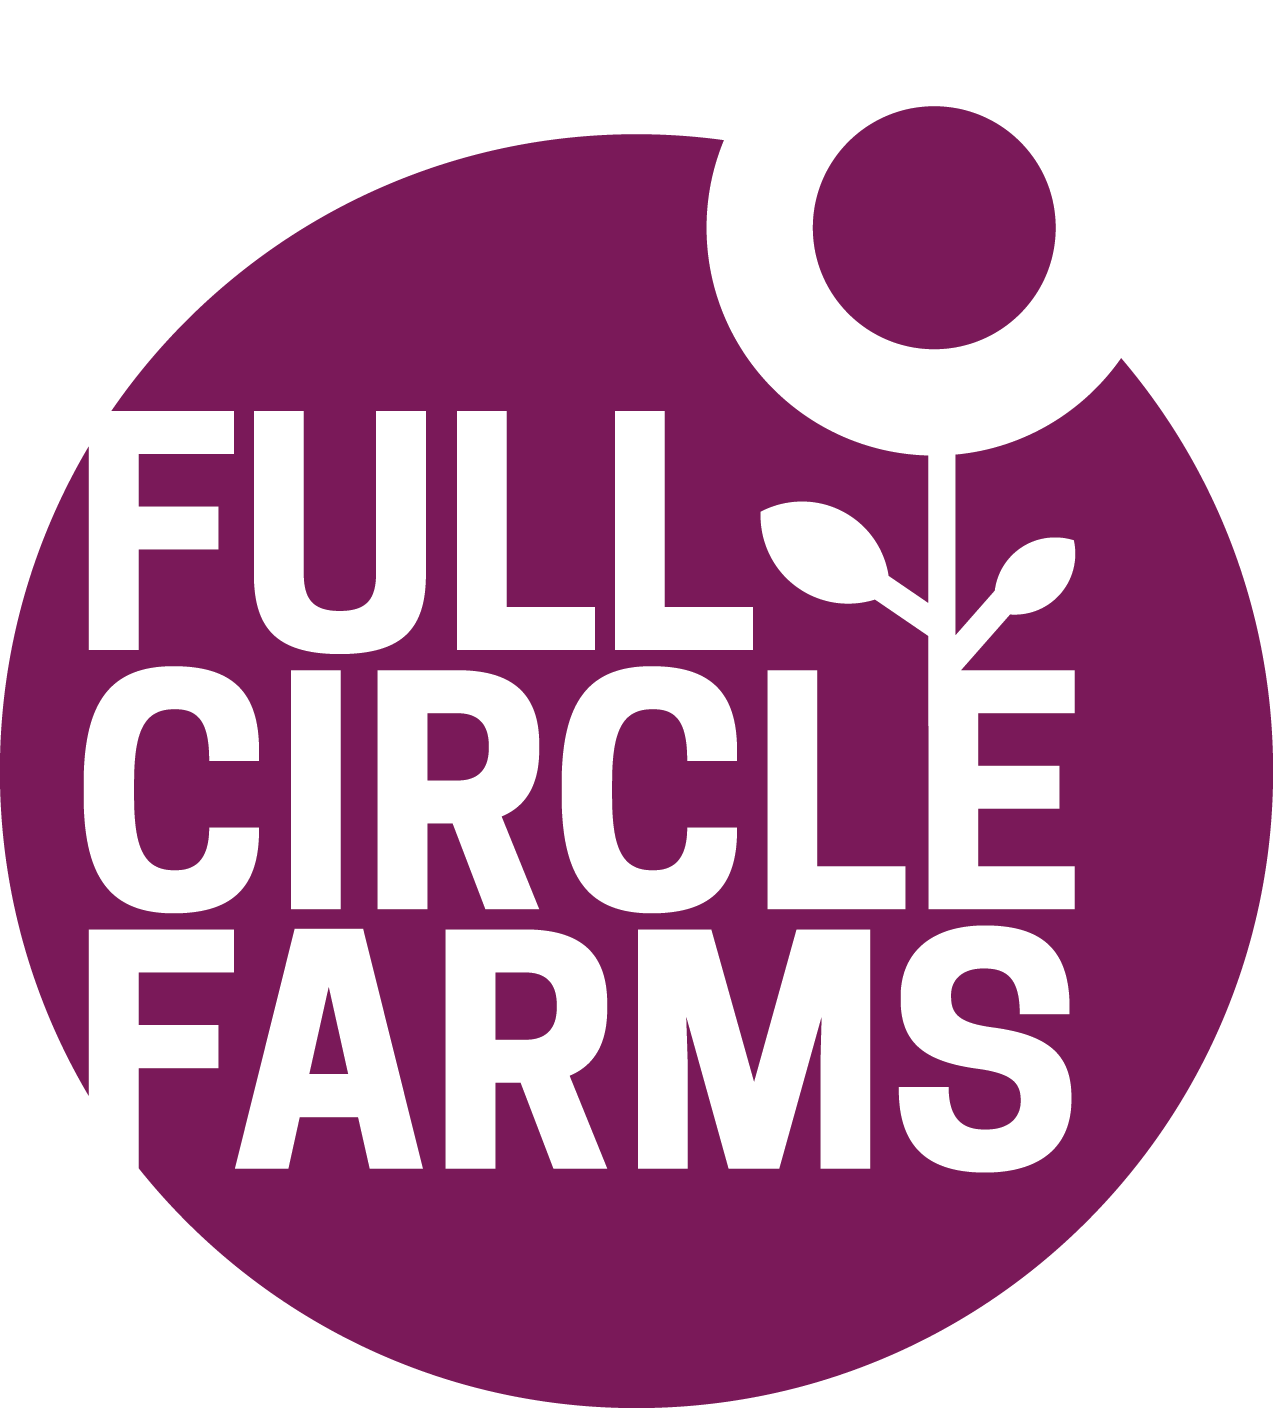 Full Circle Farms Sussex